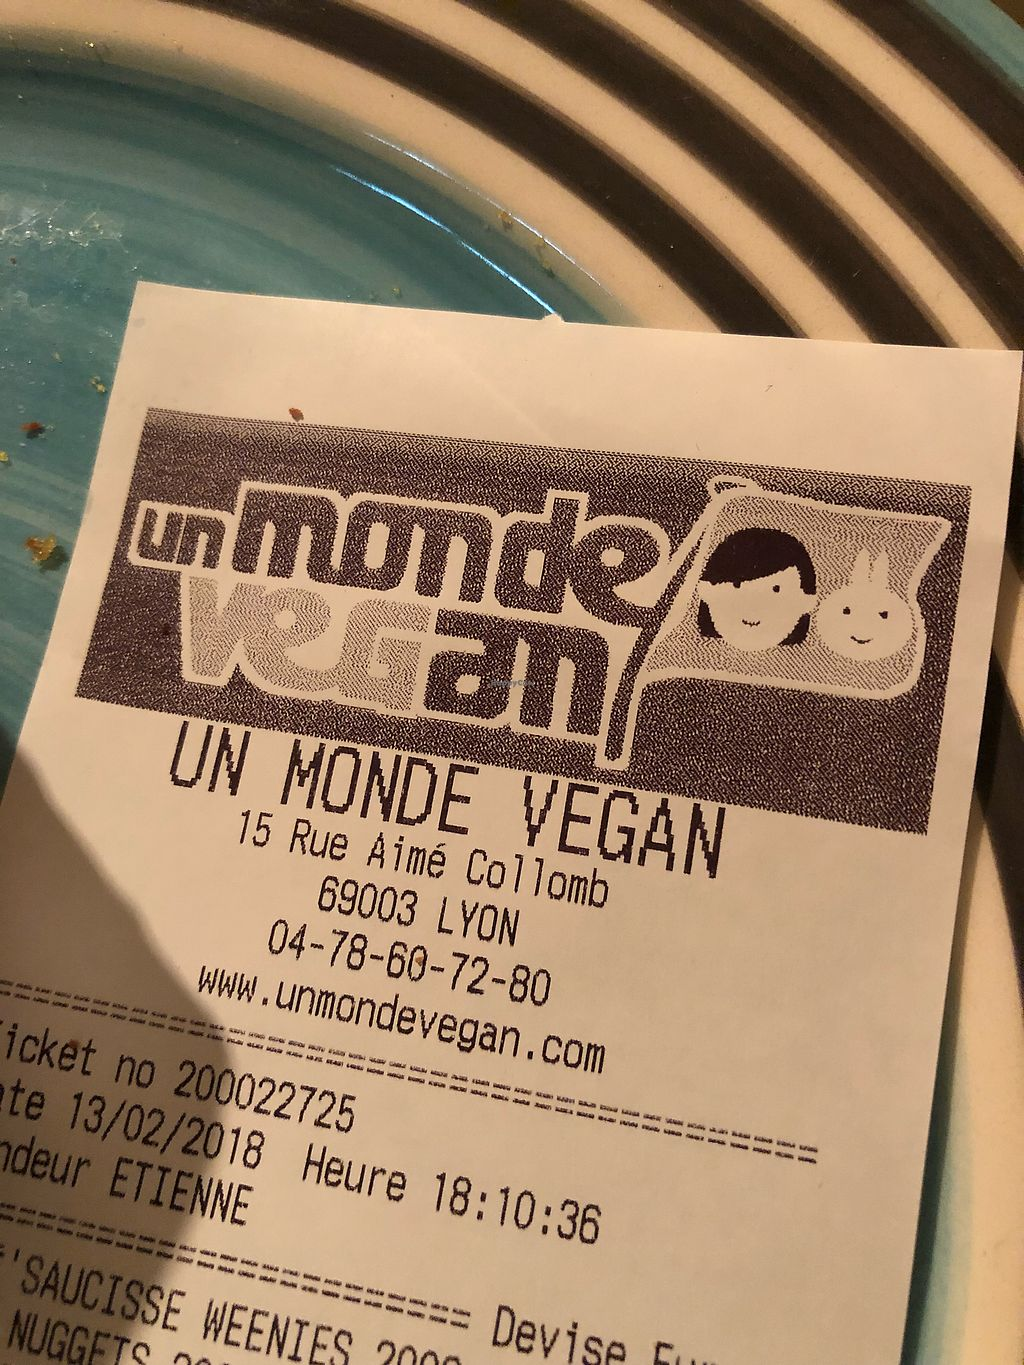 "Photo of Un Monde Vegan  by <a href=""/members/profile/_hael"">_hael</a> <br/>Un Monde Vegan <br/> February 14, 2018  - <a href='/contact/abuse/image/65477/359270'>Report</a>"